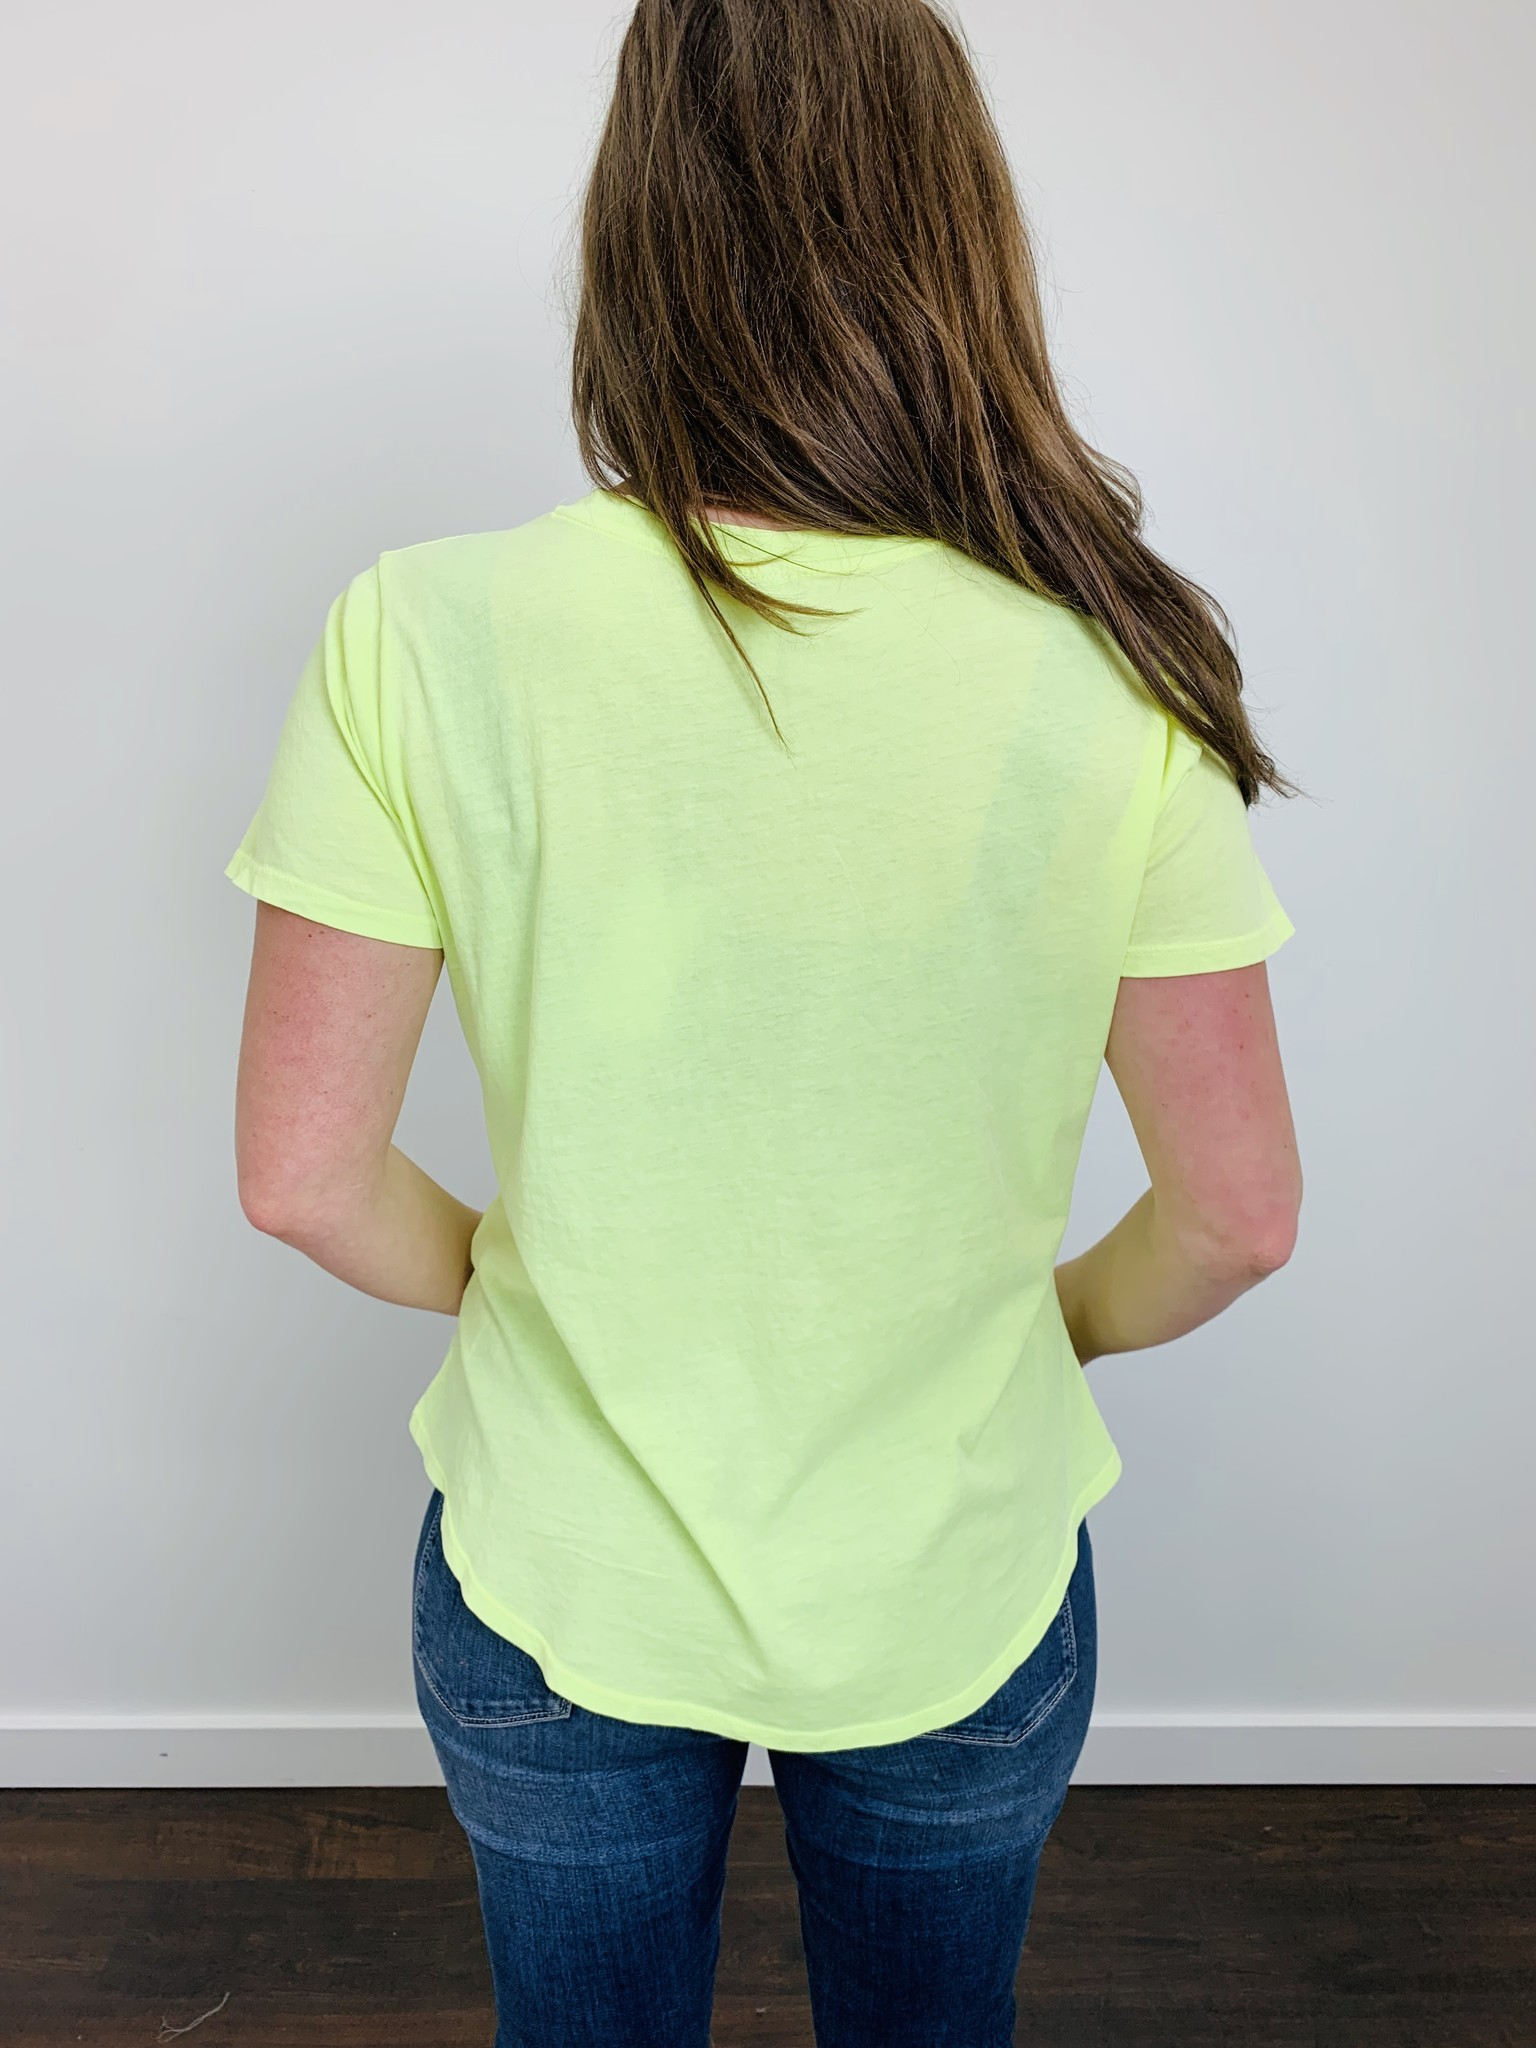 ZSupply The Neon V-Neck Tee in Neon Lime